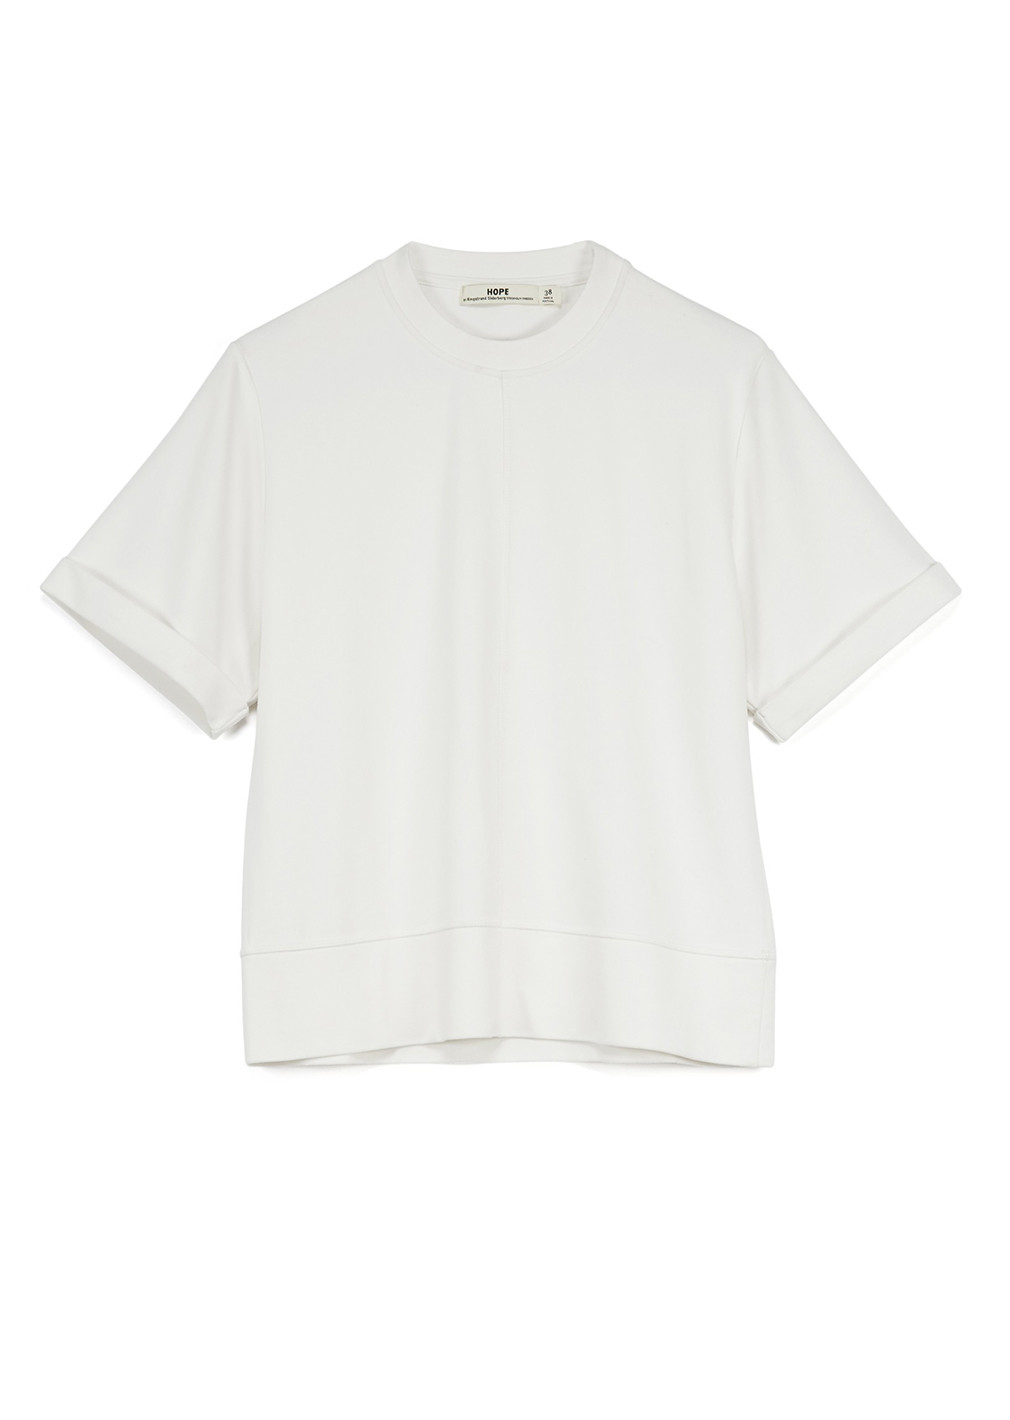 hope-sing-tee-nearly-white-front